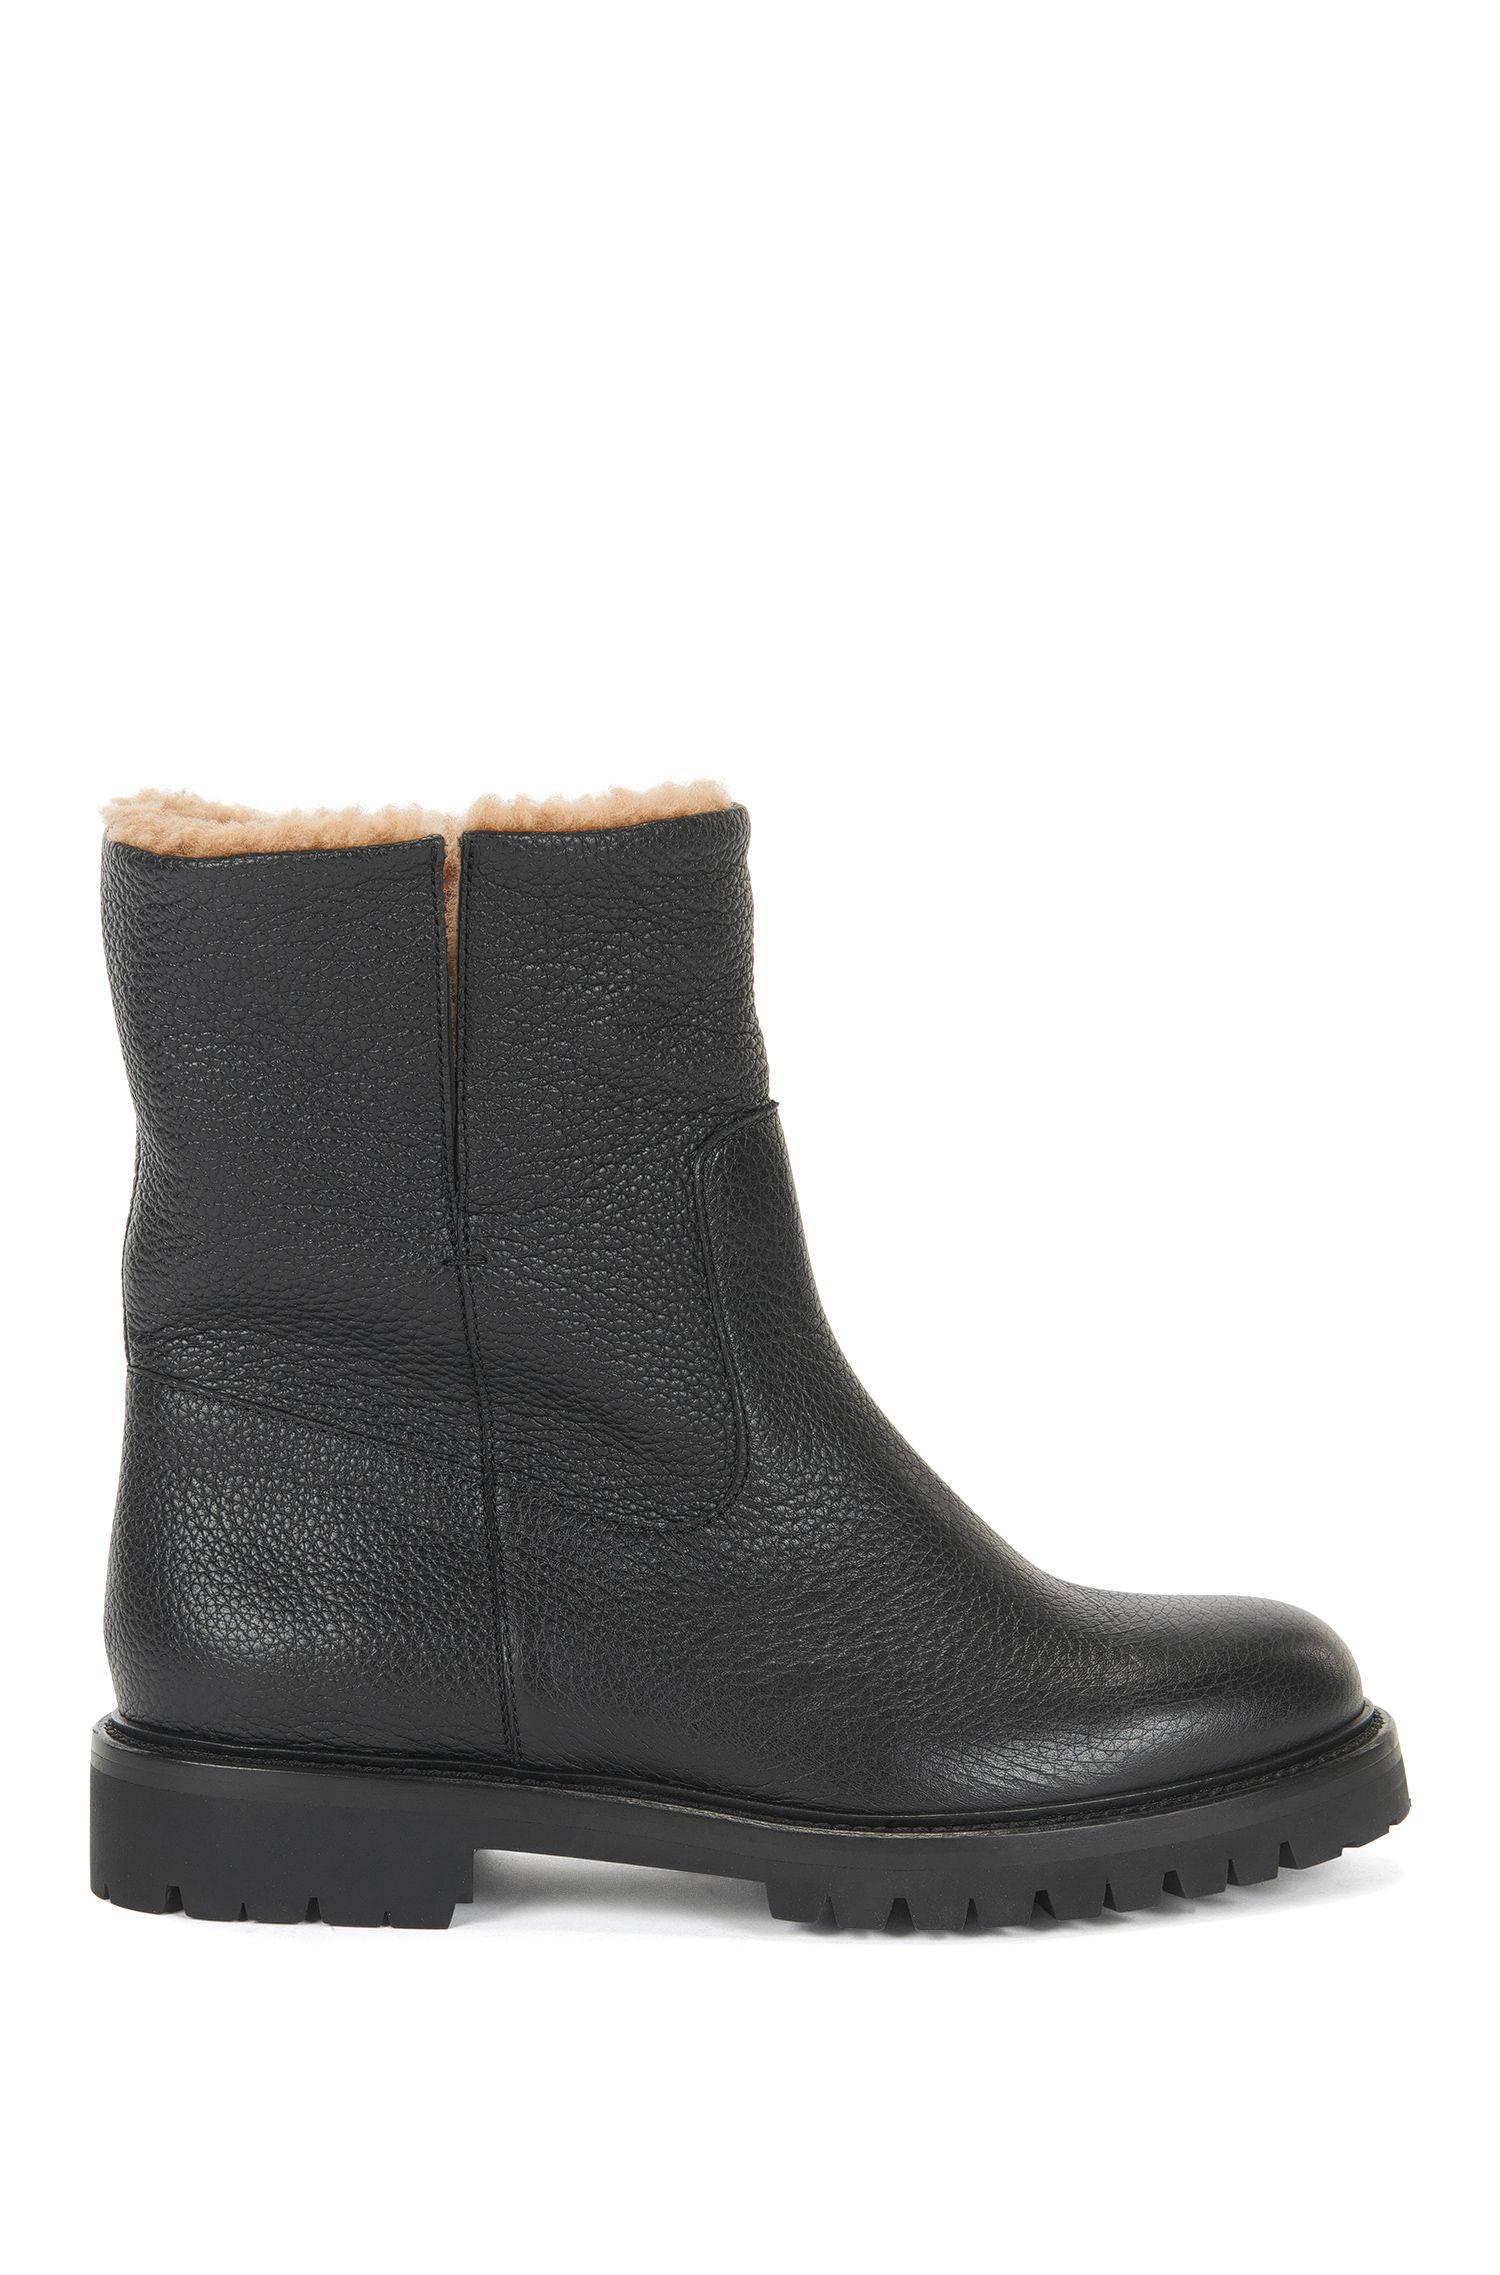 Leather boots with lambskin lining